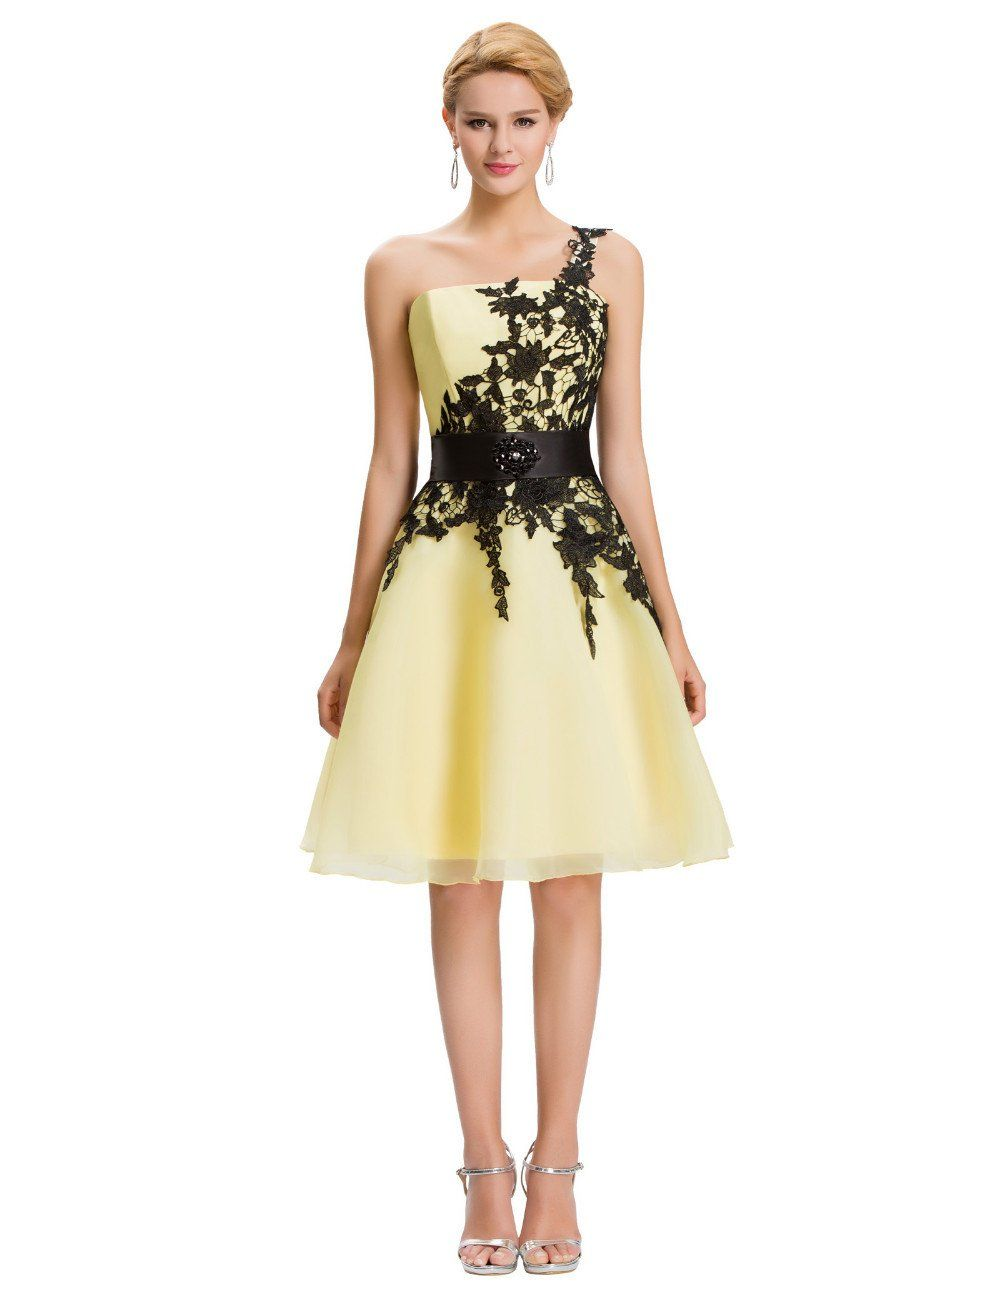 Aisha Strapless Formal Dress For Women